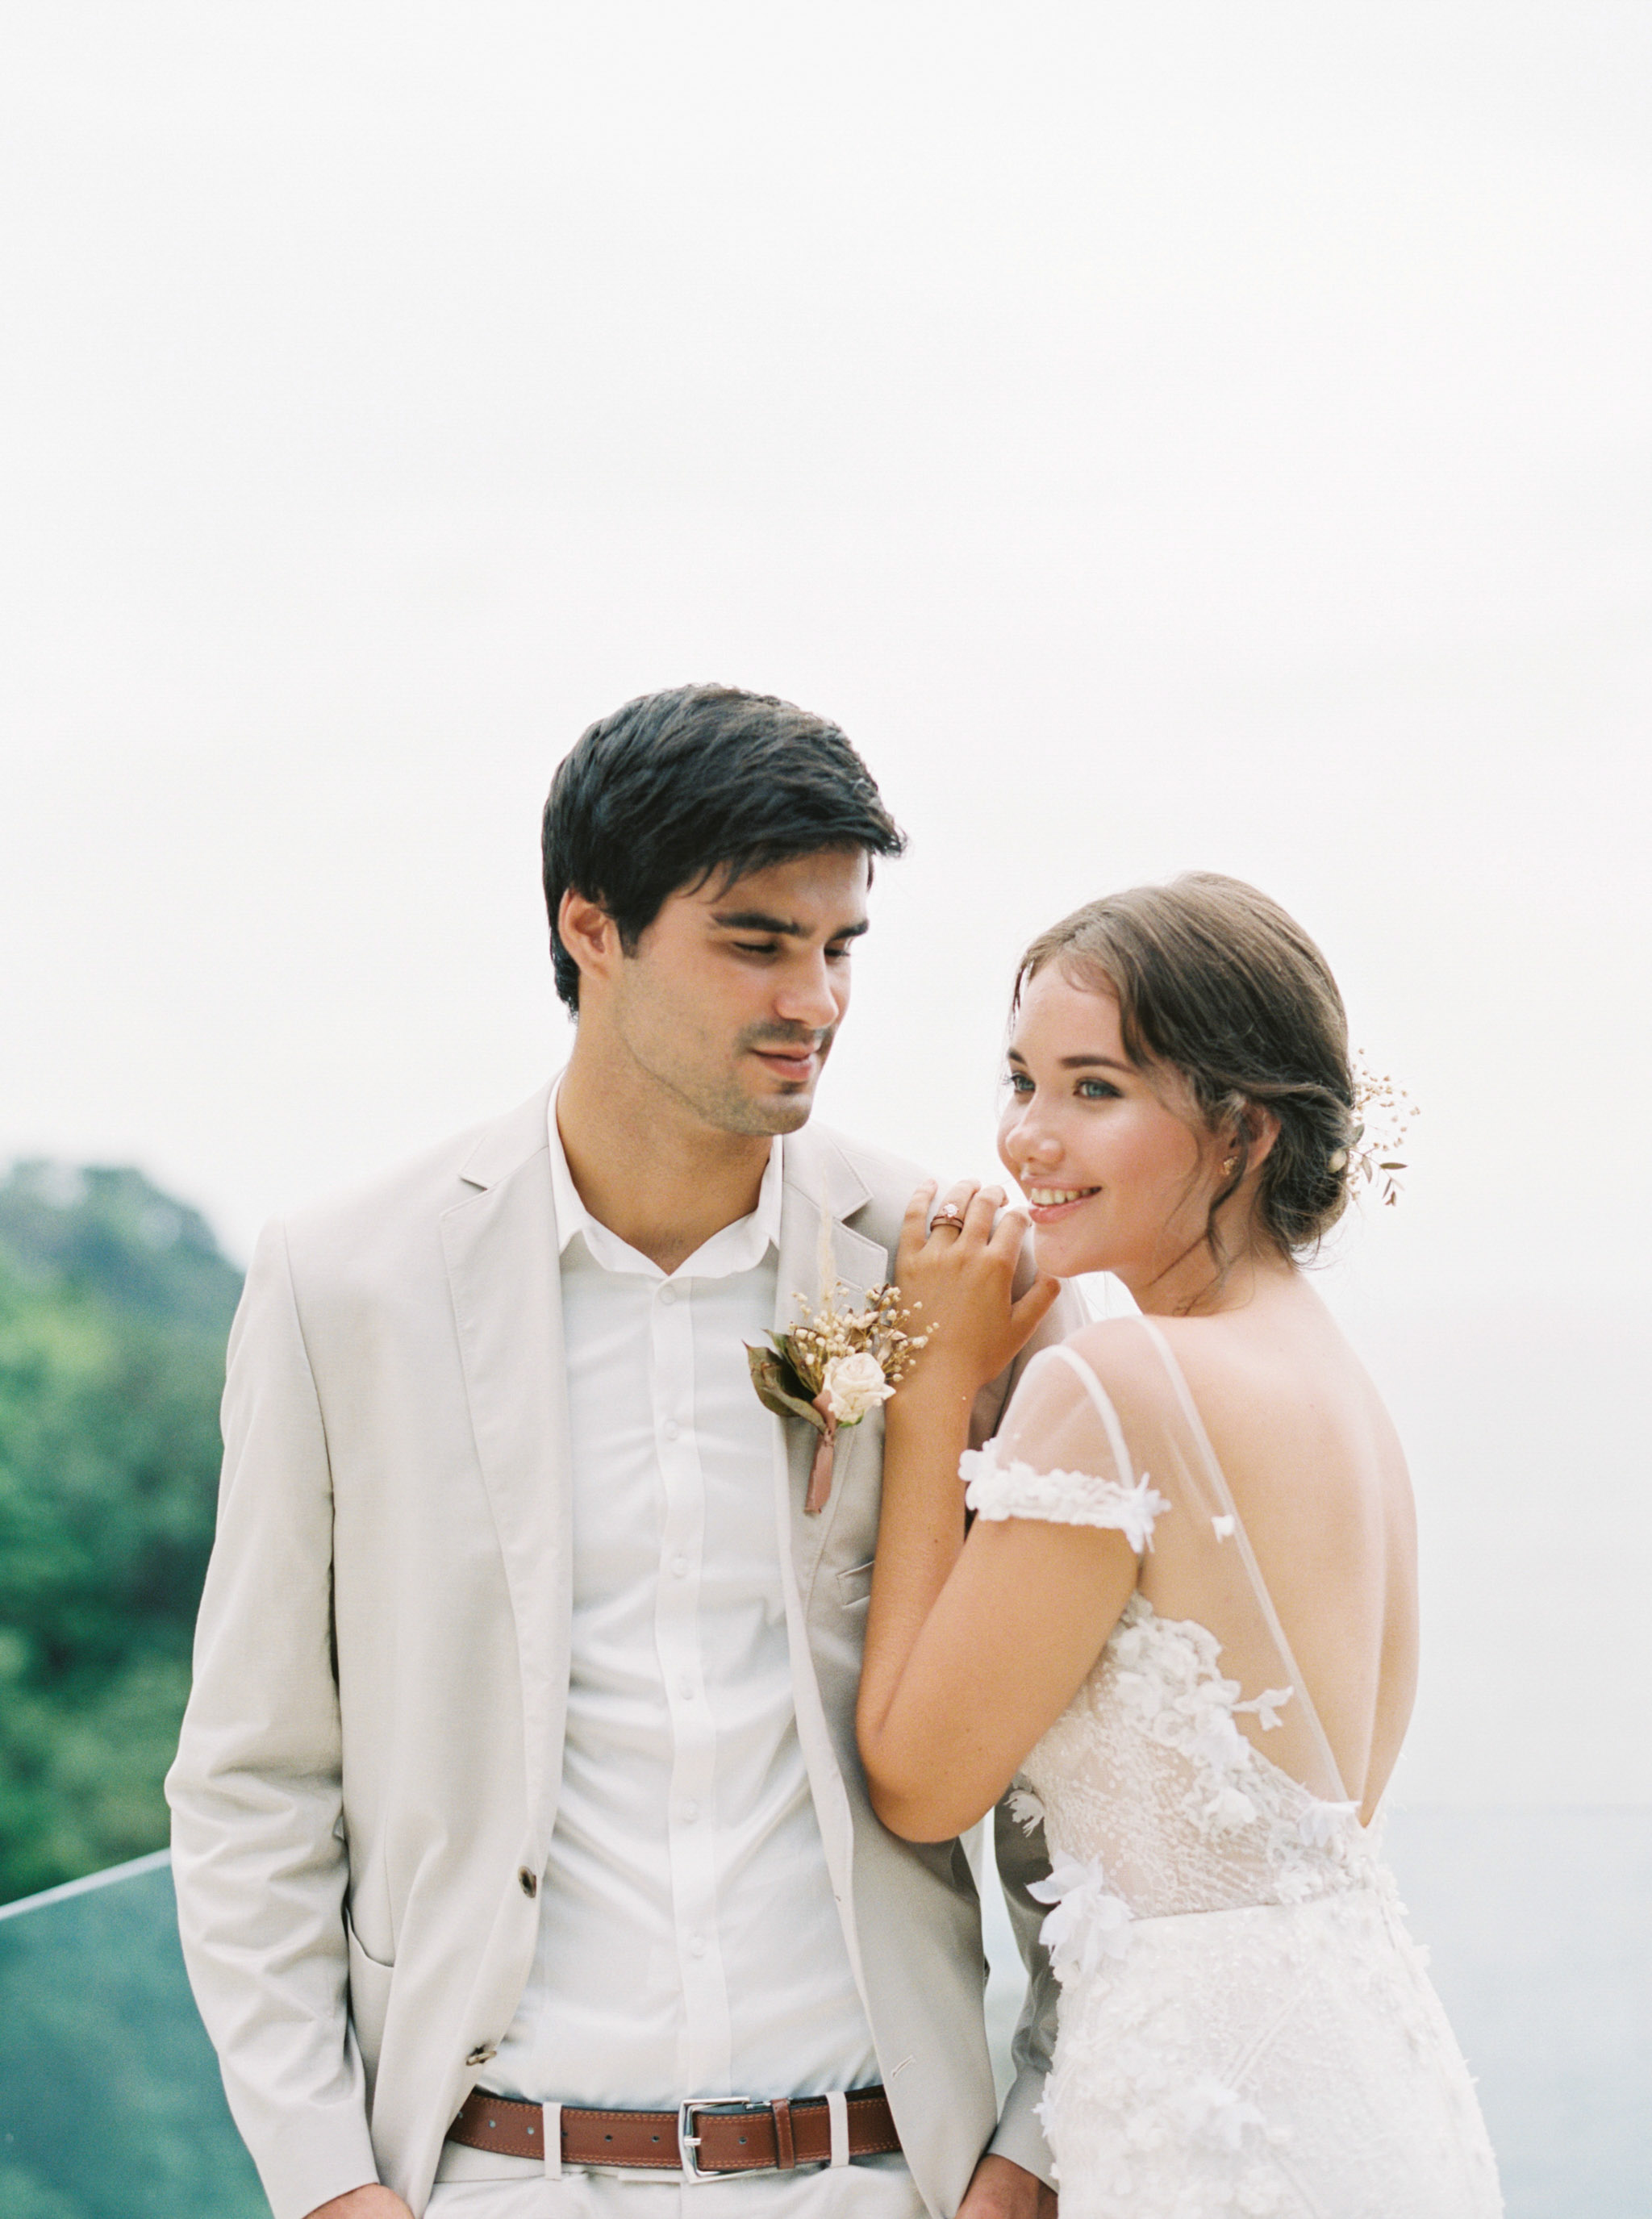 Destination Wedding at The Aquila Luxury Villas in Phuket Thailand Fine Art Film Wedding Photographer Sheri McMahon-00070-70.jpg